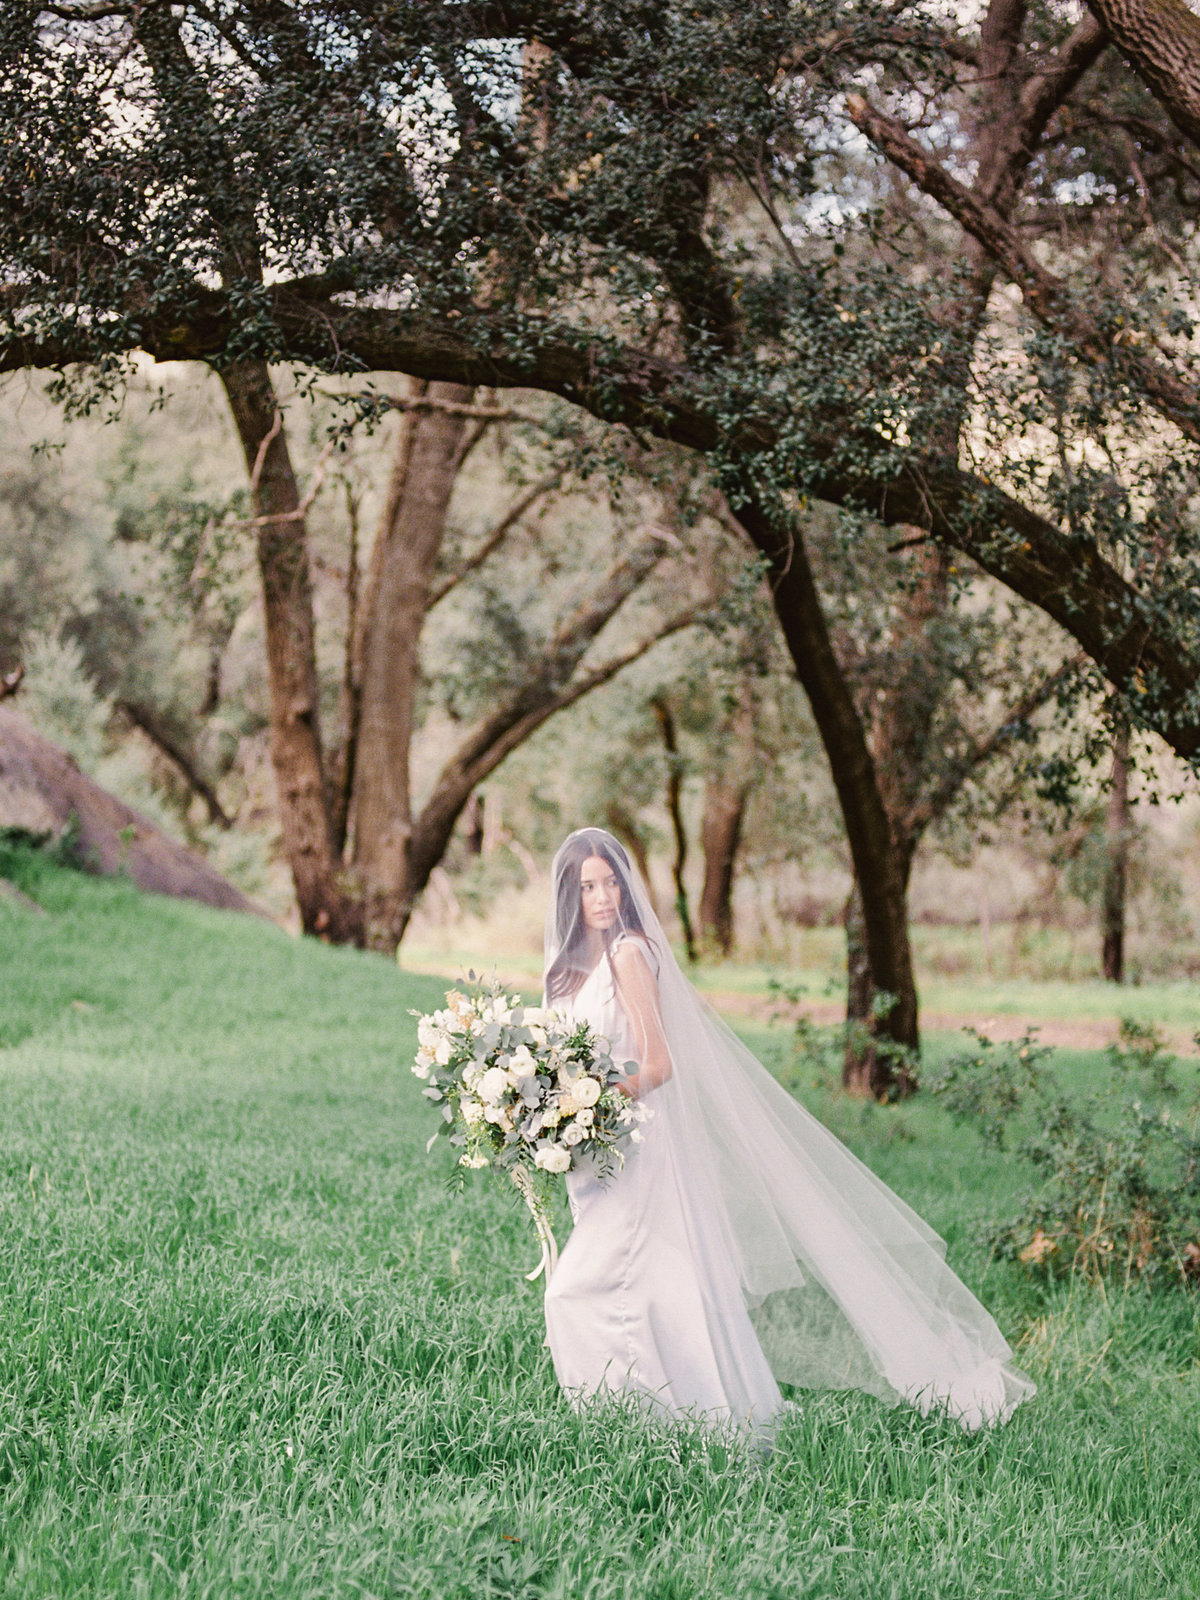 Babsie-Ly-Photography-Fine-Art-Film-Wedding-Bridal-Editorial-in-Hidden-Oaks-San-Diego-015